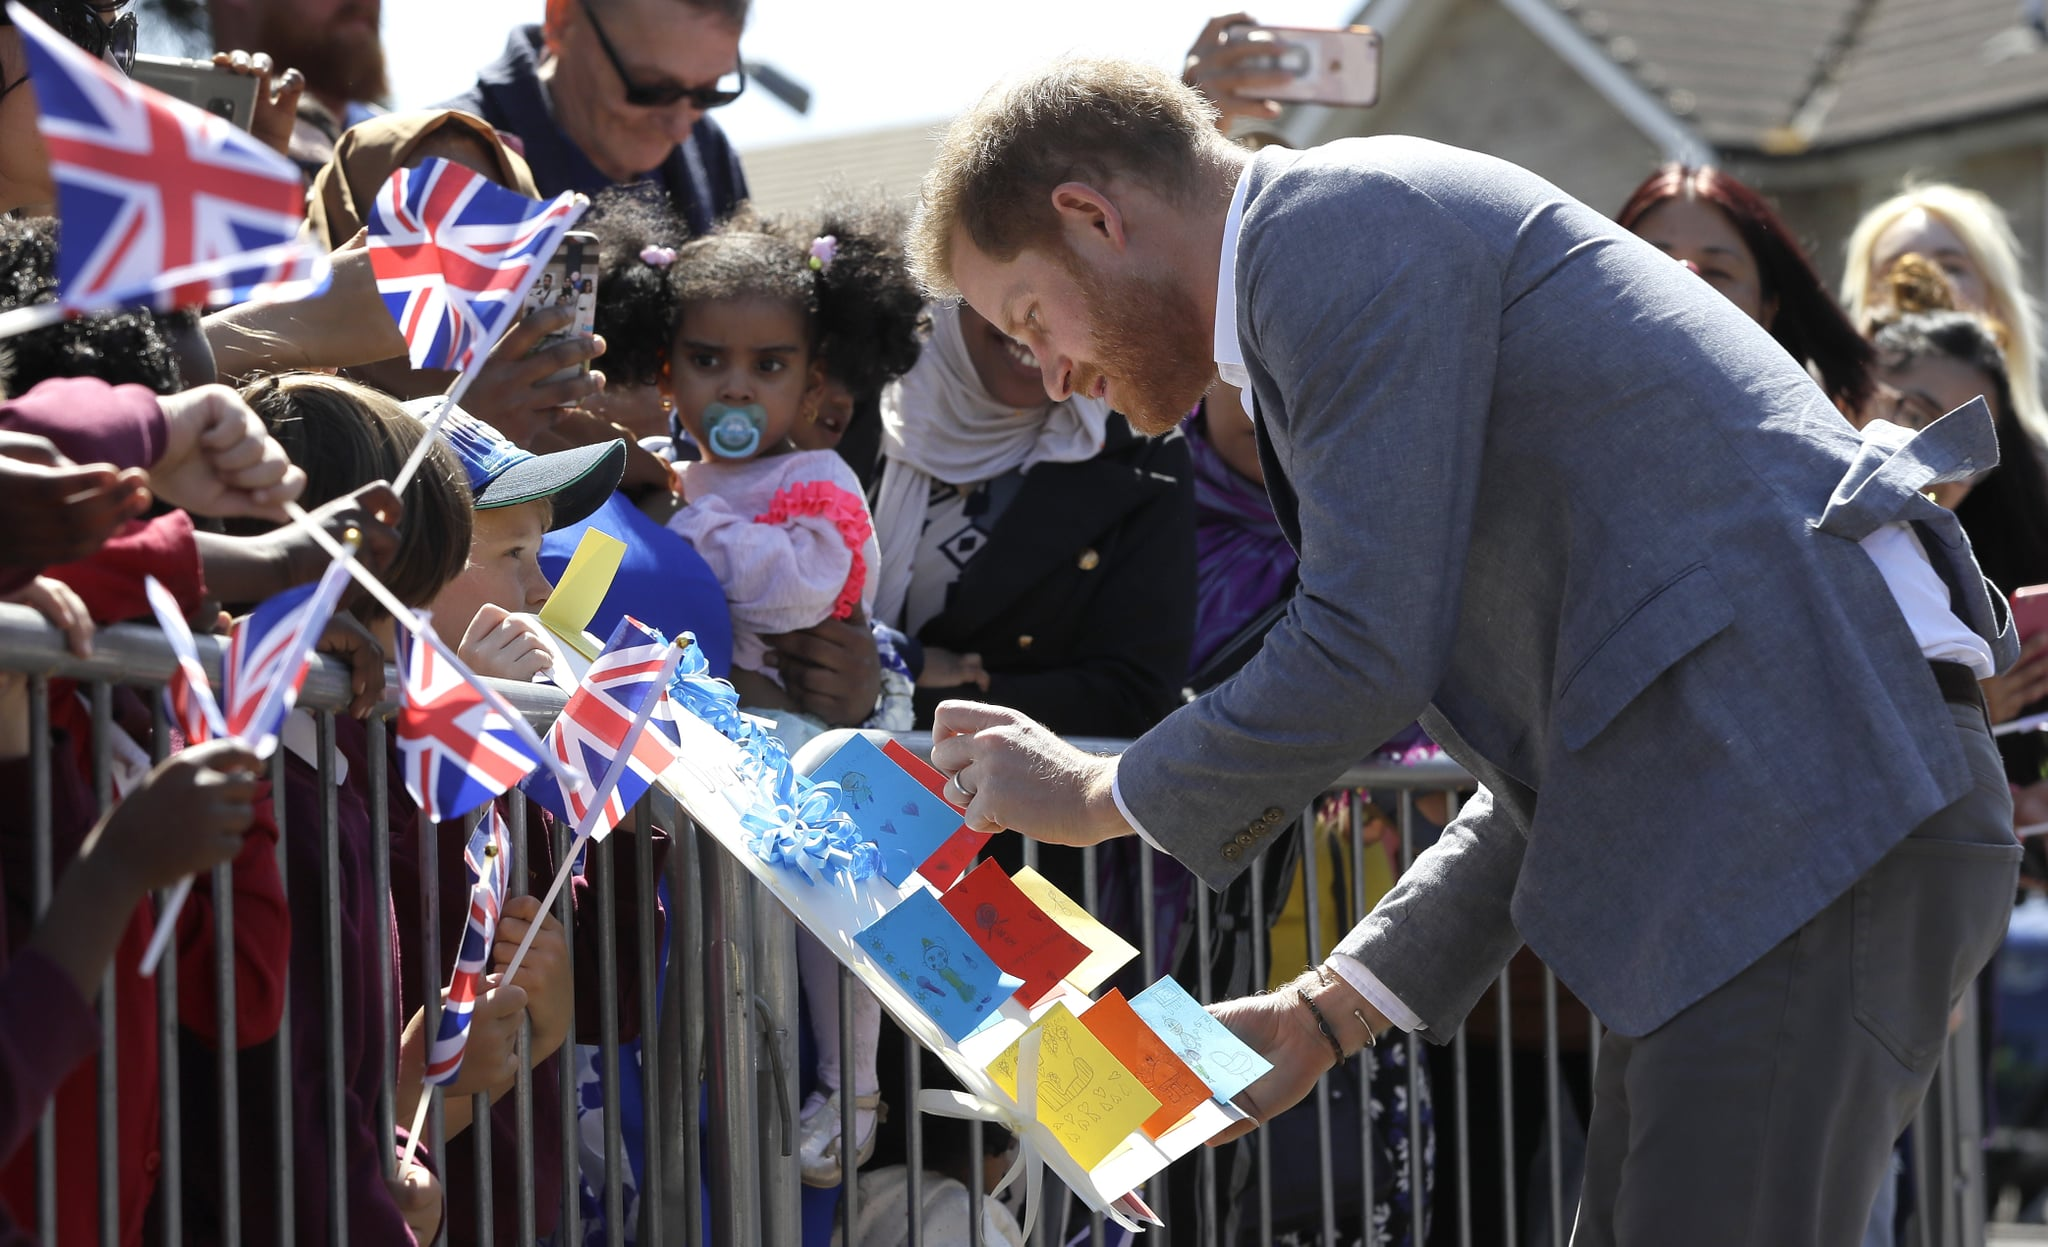 OXFORD, ENGLAND - MAY 14: Prince Harry, Duke of Sussex meets members of the public as he arrives for a visit to Barton Neighbourhood Centre on May 14, 2019 in Oxford, England. The centre is a hub for local residents which houses a doctor's surgery, food bank, cafe and youth club. (Photo by Kirsty Wigglesworth - WPA Pool/Getty Images)